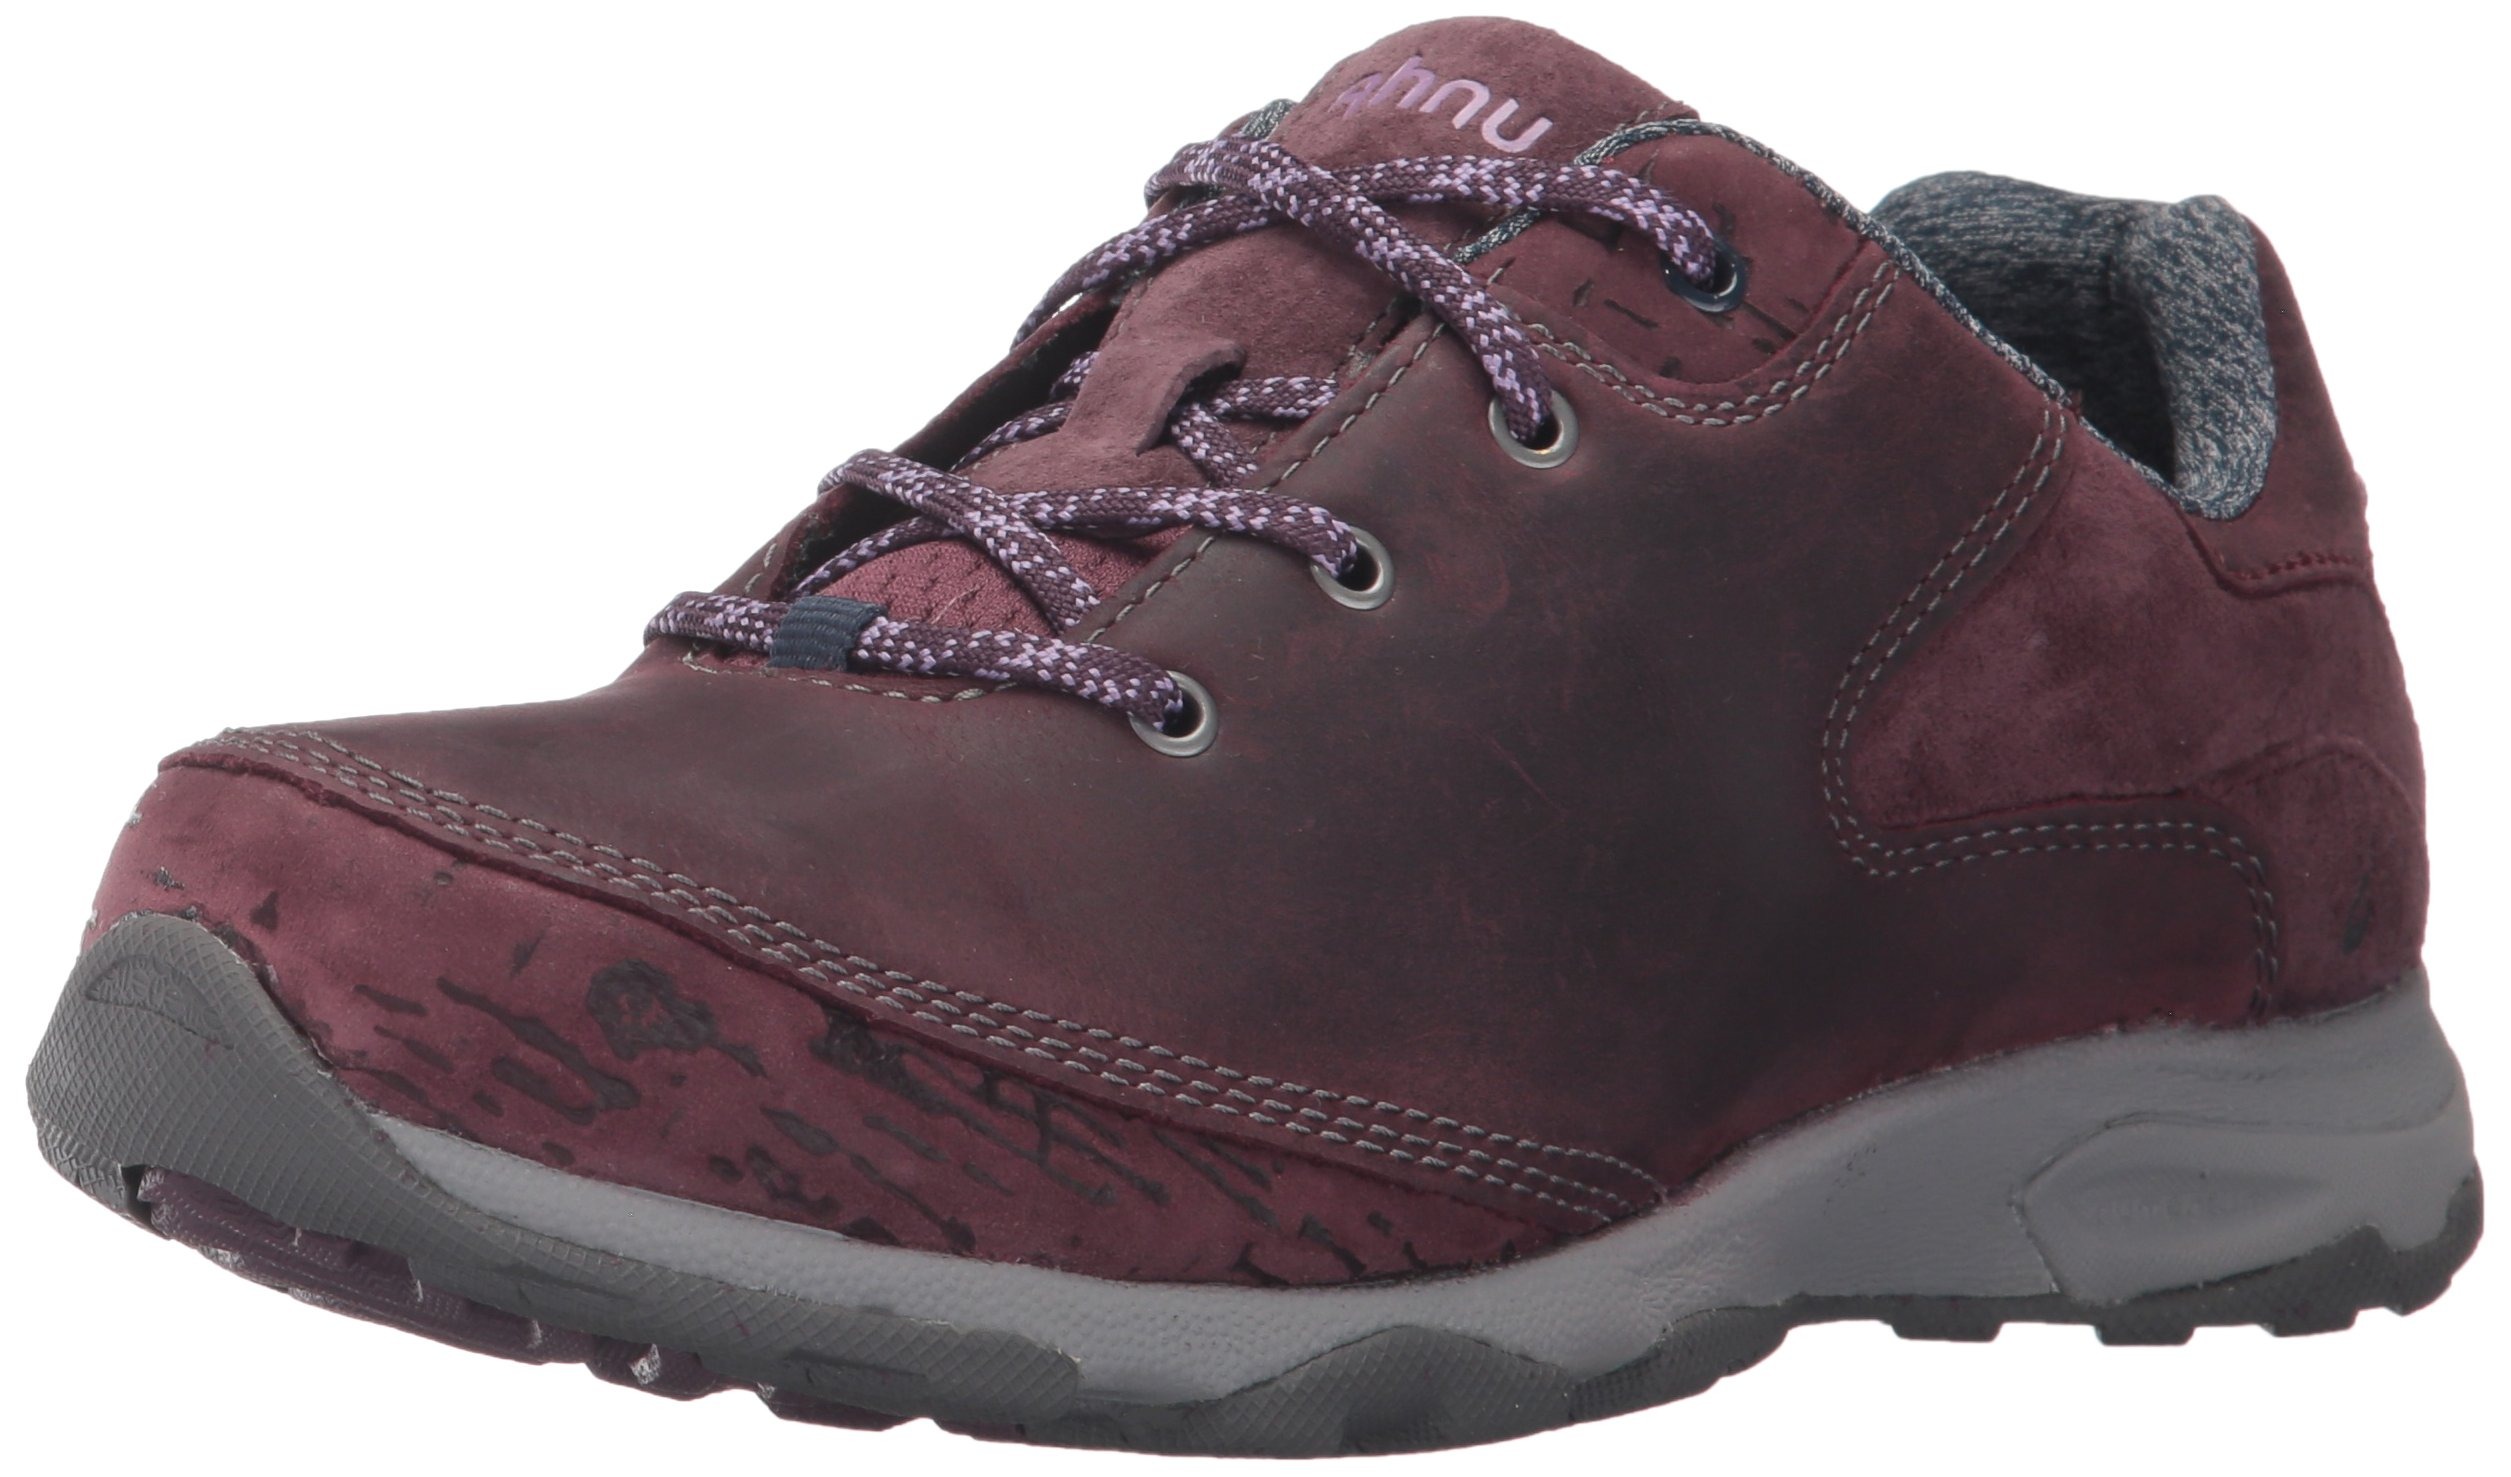 Ahnu Women's W Sugar Venture Lace Backpacking Boot